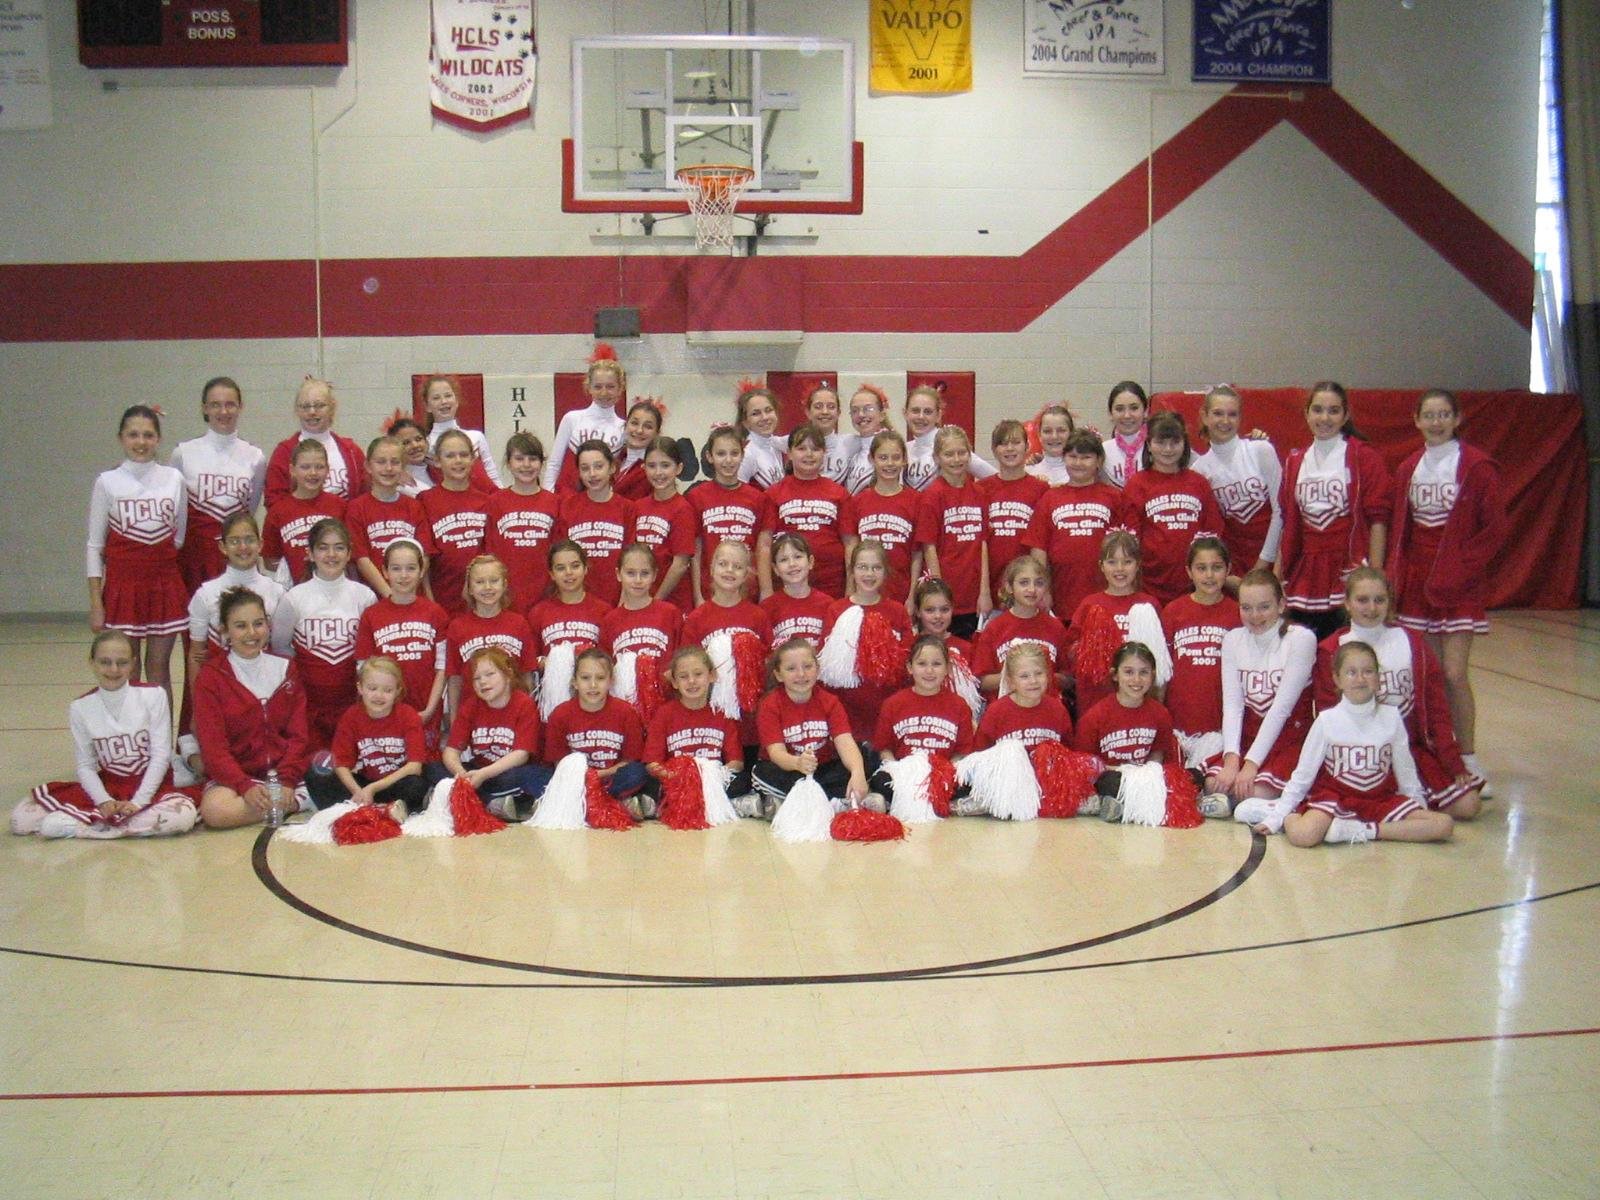 2005 Pom Clinic Team